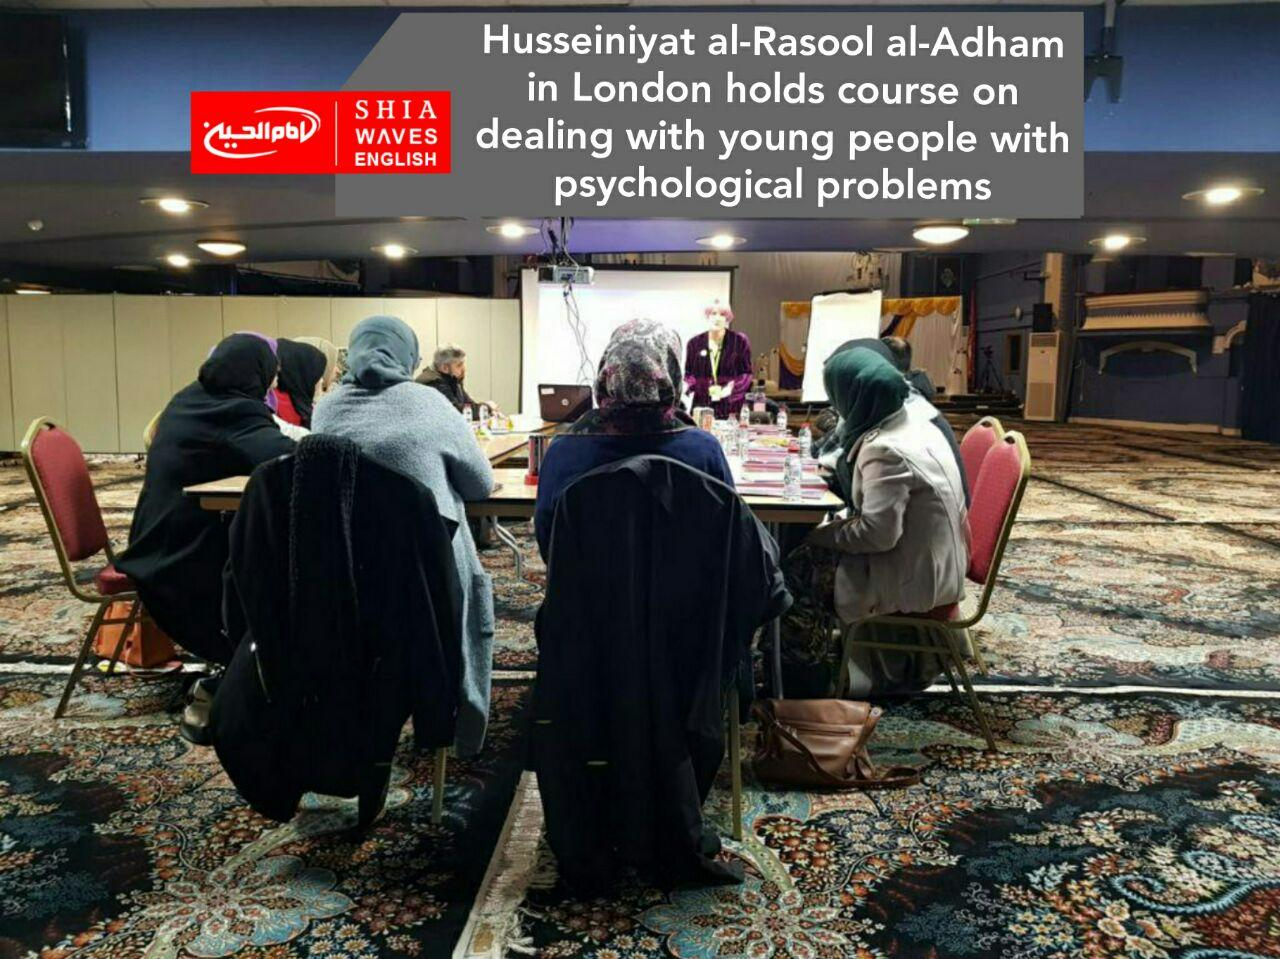 Photo of Husseiniyat al-Rasool al-Adham in London holds course on dealing with young people with psychological problems